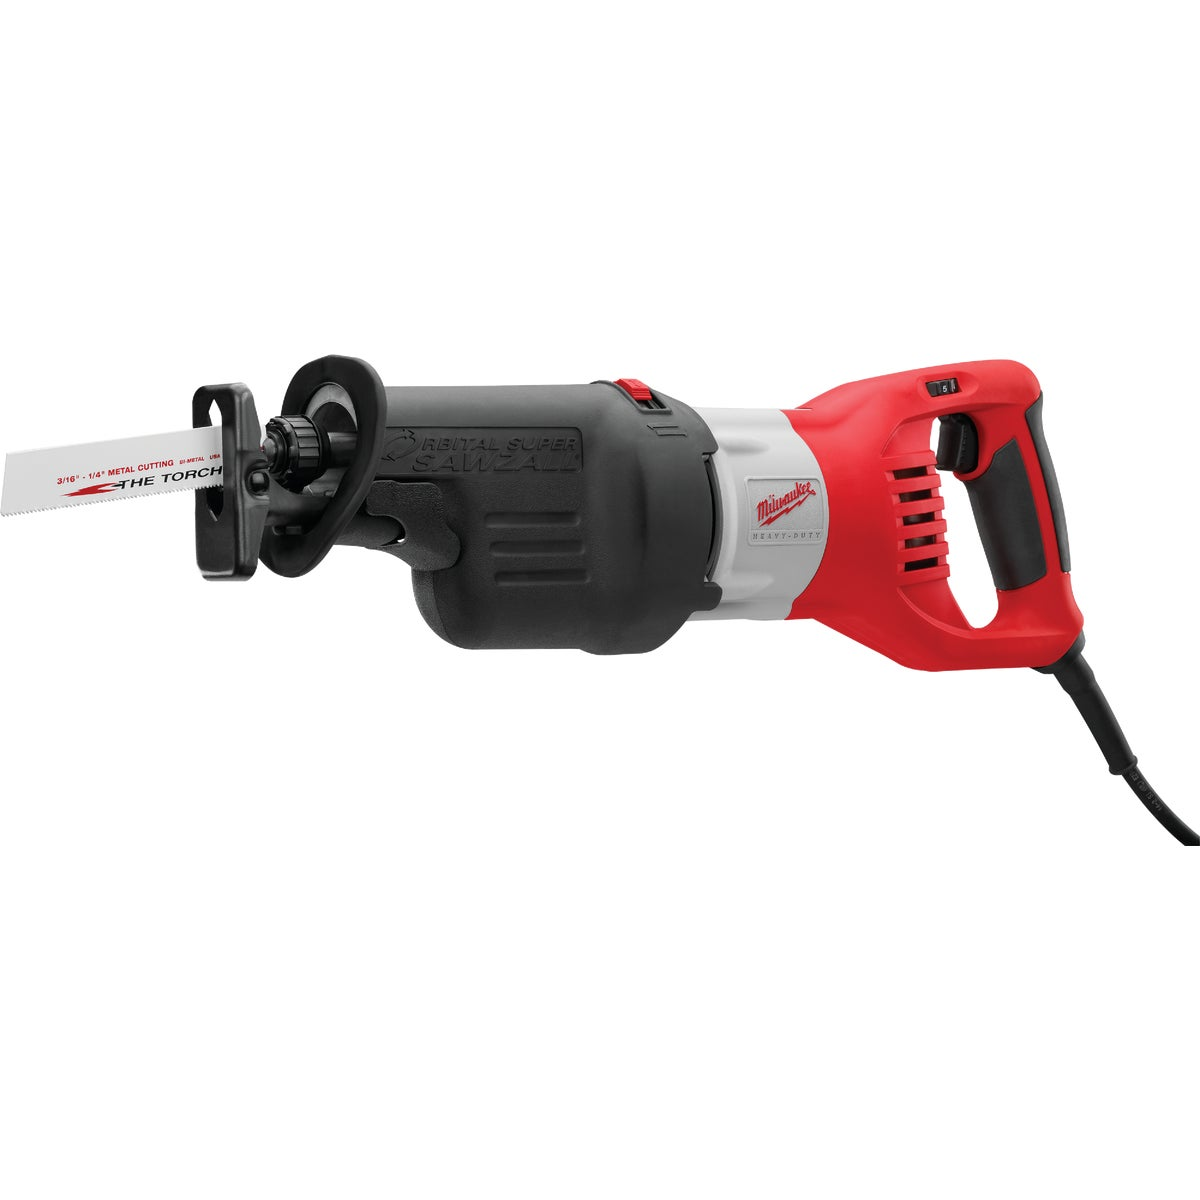 15A SUPER SAWZALL - 653821 by Milwaukee Elec Tool